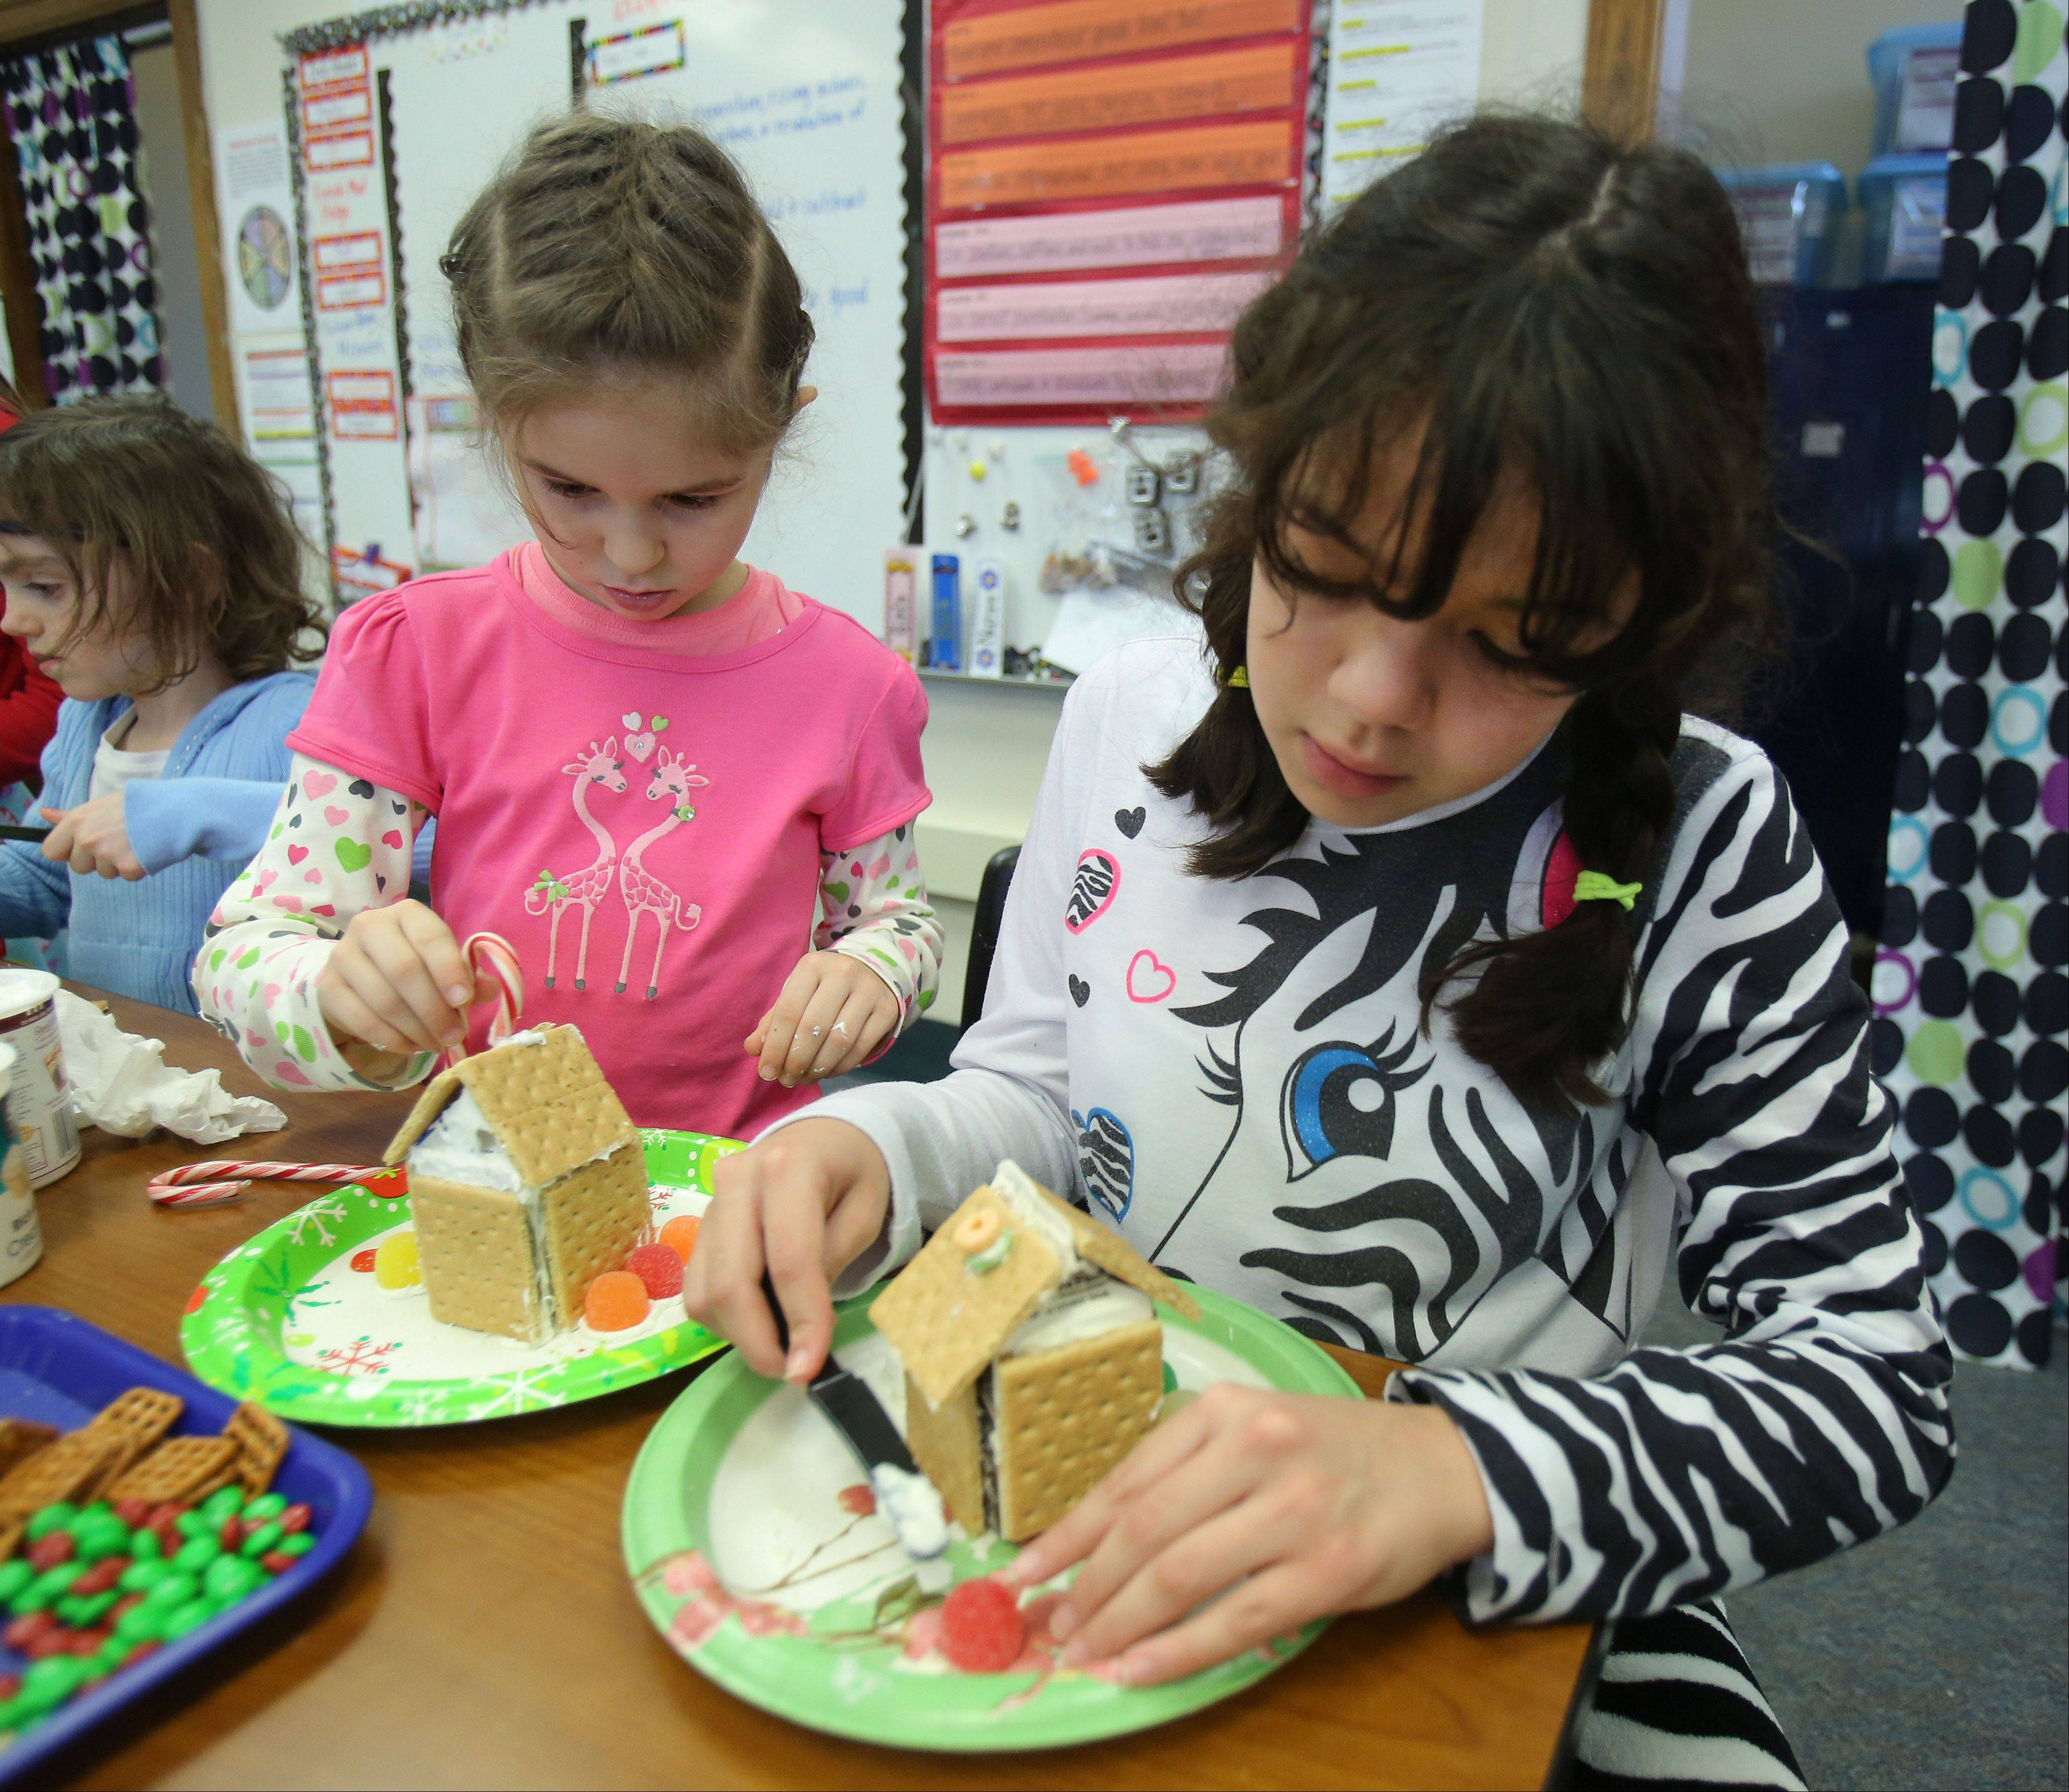 First grader Emily Psyhogios, left, and her fifth grade book buddy Payton Rodriguez, build gingerbread houses at Rockland Elementary School in Libertyville Thursday.